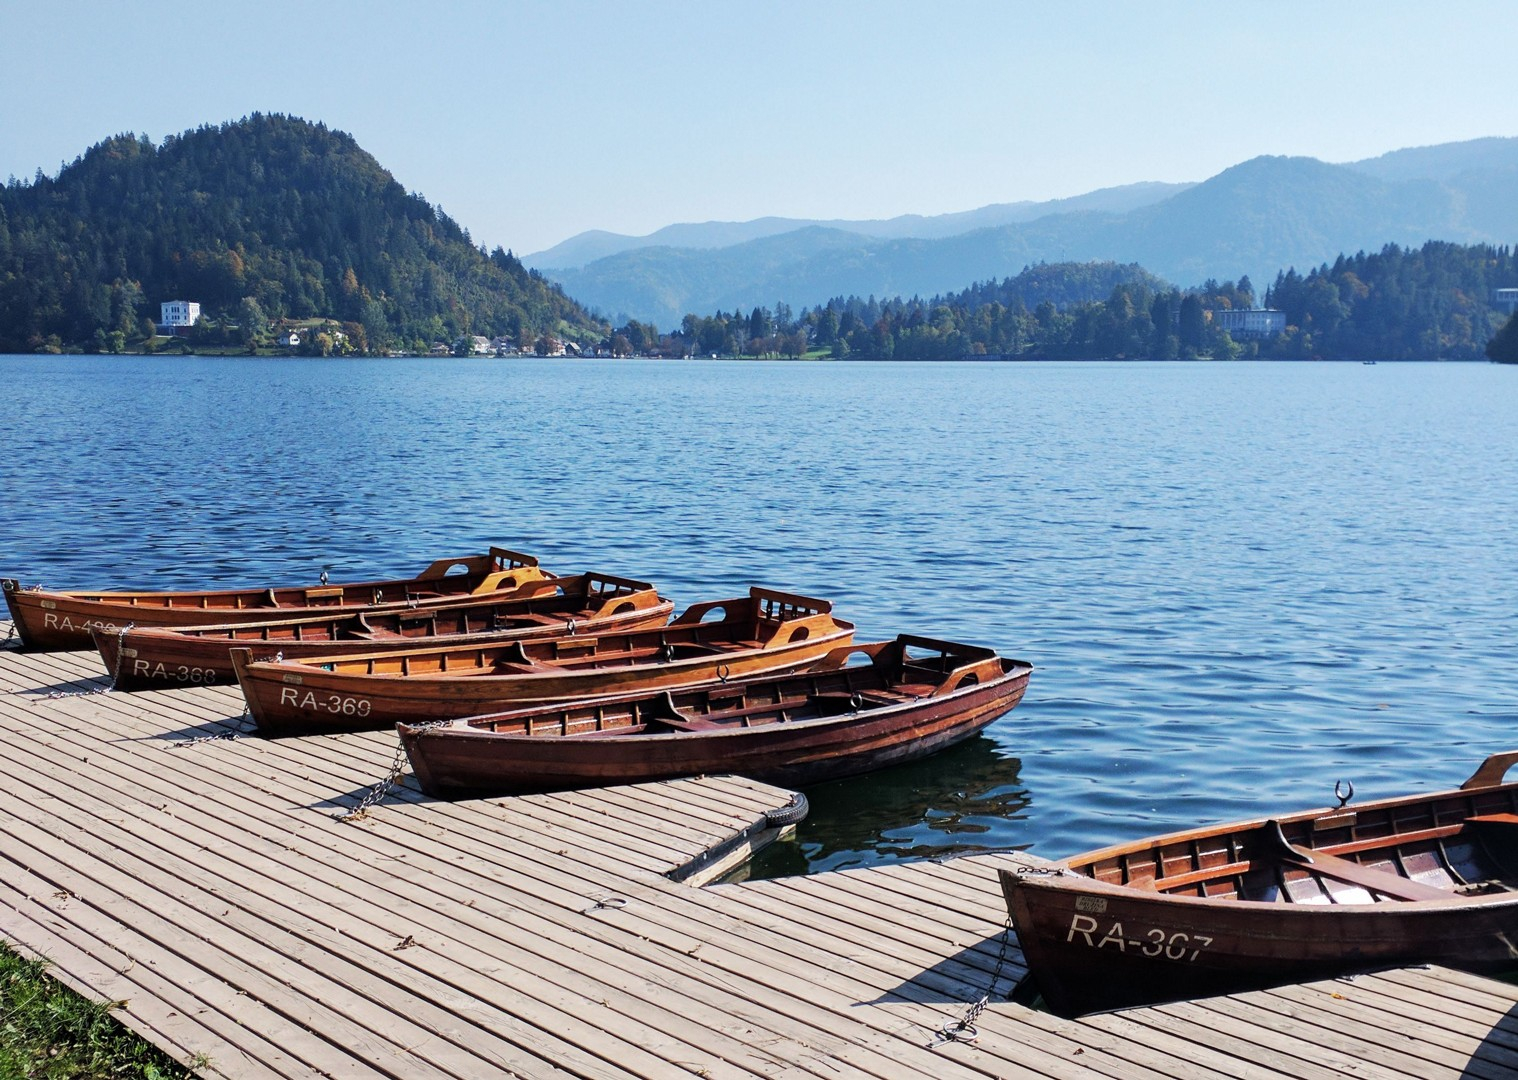 pletna-boat-self-guided-leisure-cycling-holiday-slovenia-highlights-of-lake-bled.jpg - Slovenia - Highlights of Lake Bled - Self-Guided Leisure Cycling Holiday - Leisure Cycling